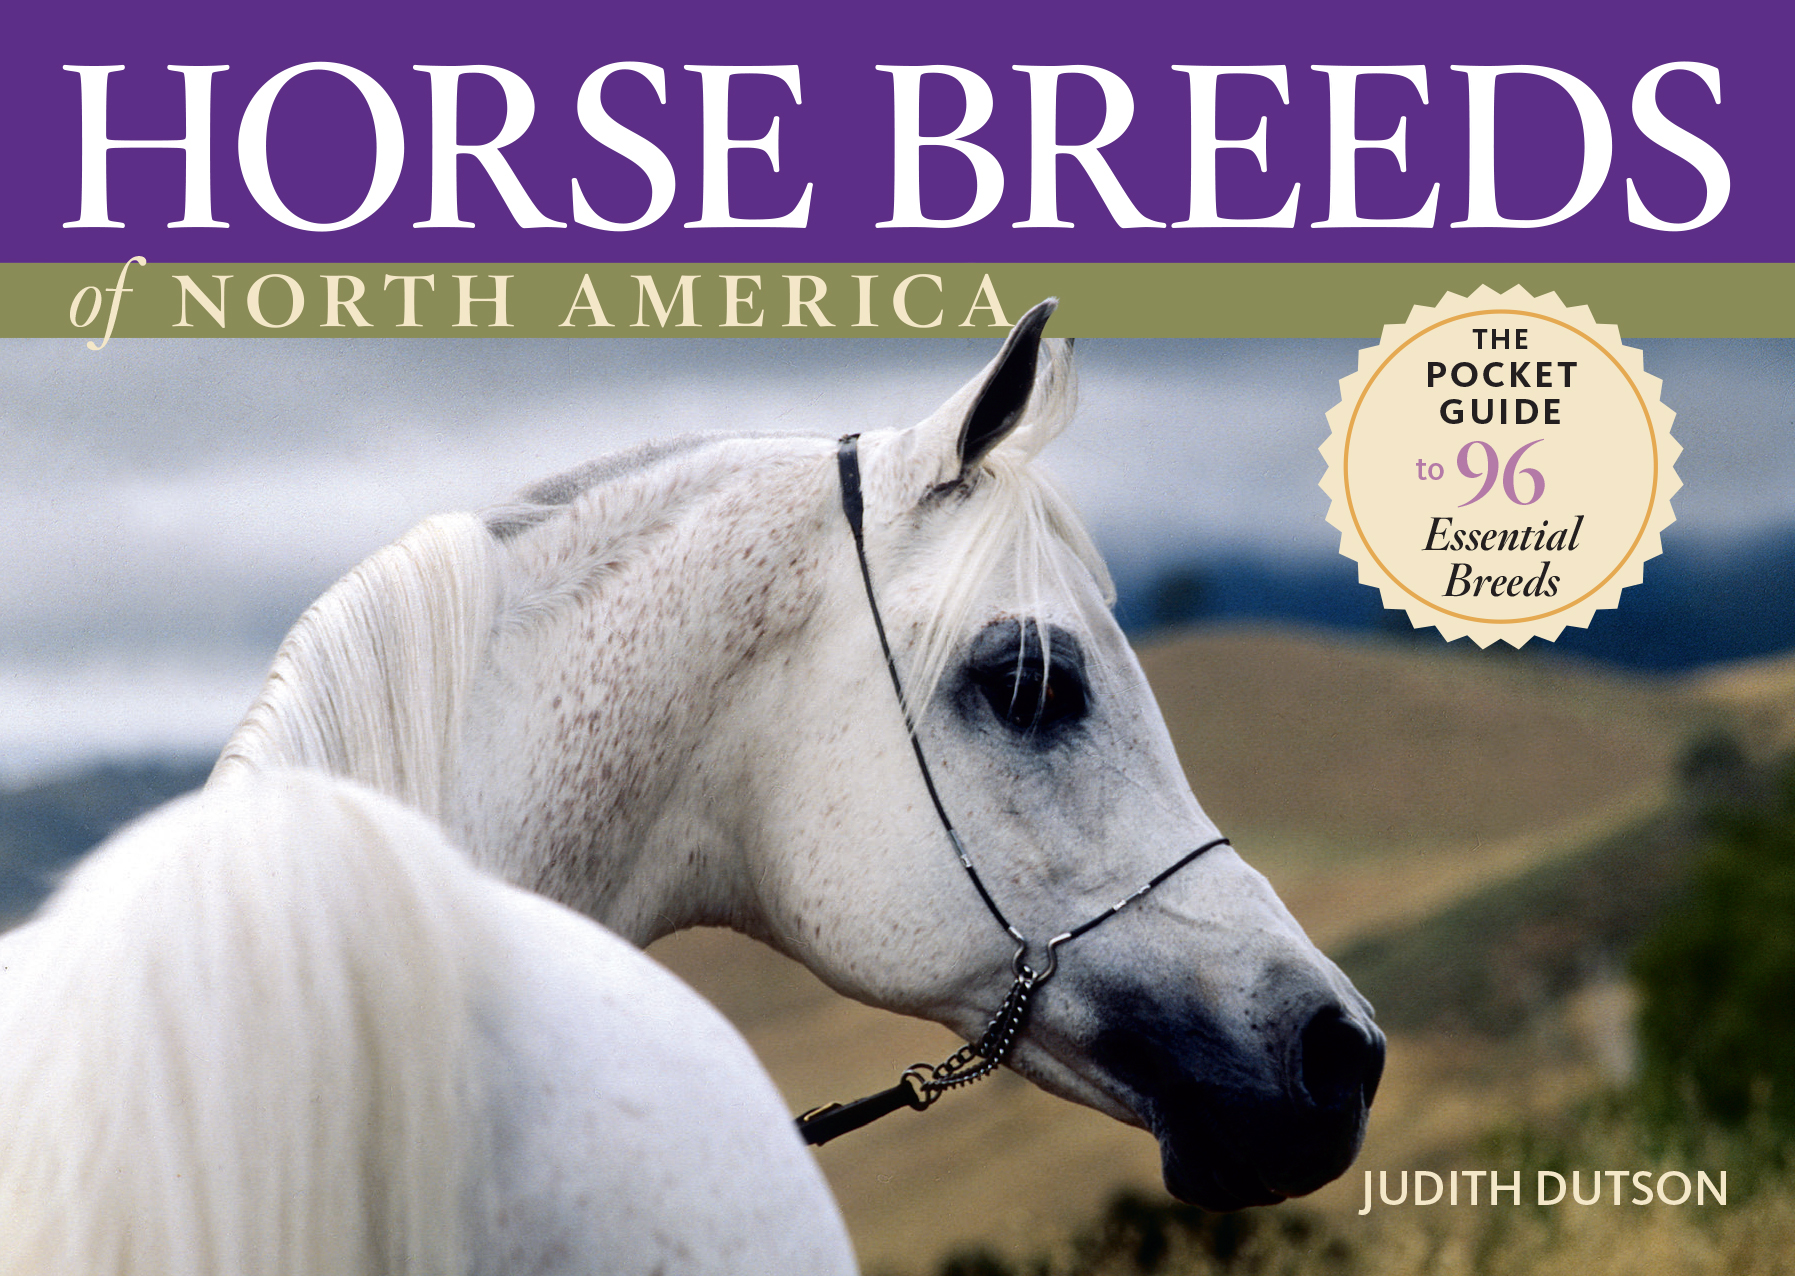 Horse Breeds of North America The Pocket Guide to 96 Essential Breeds - Judith Dutson